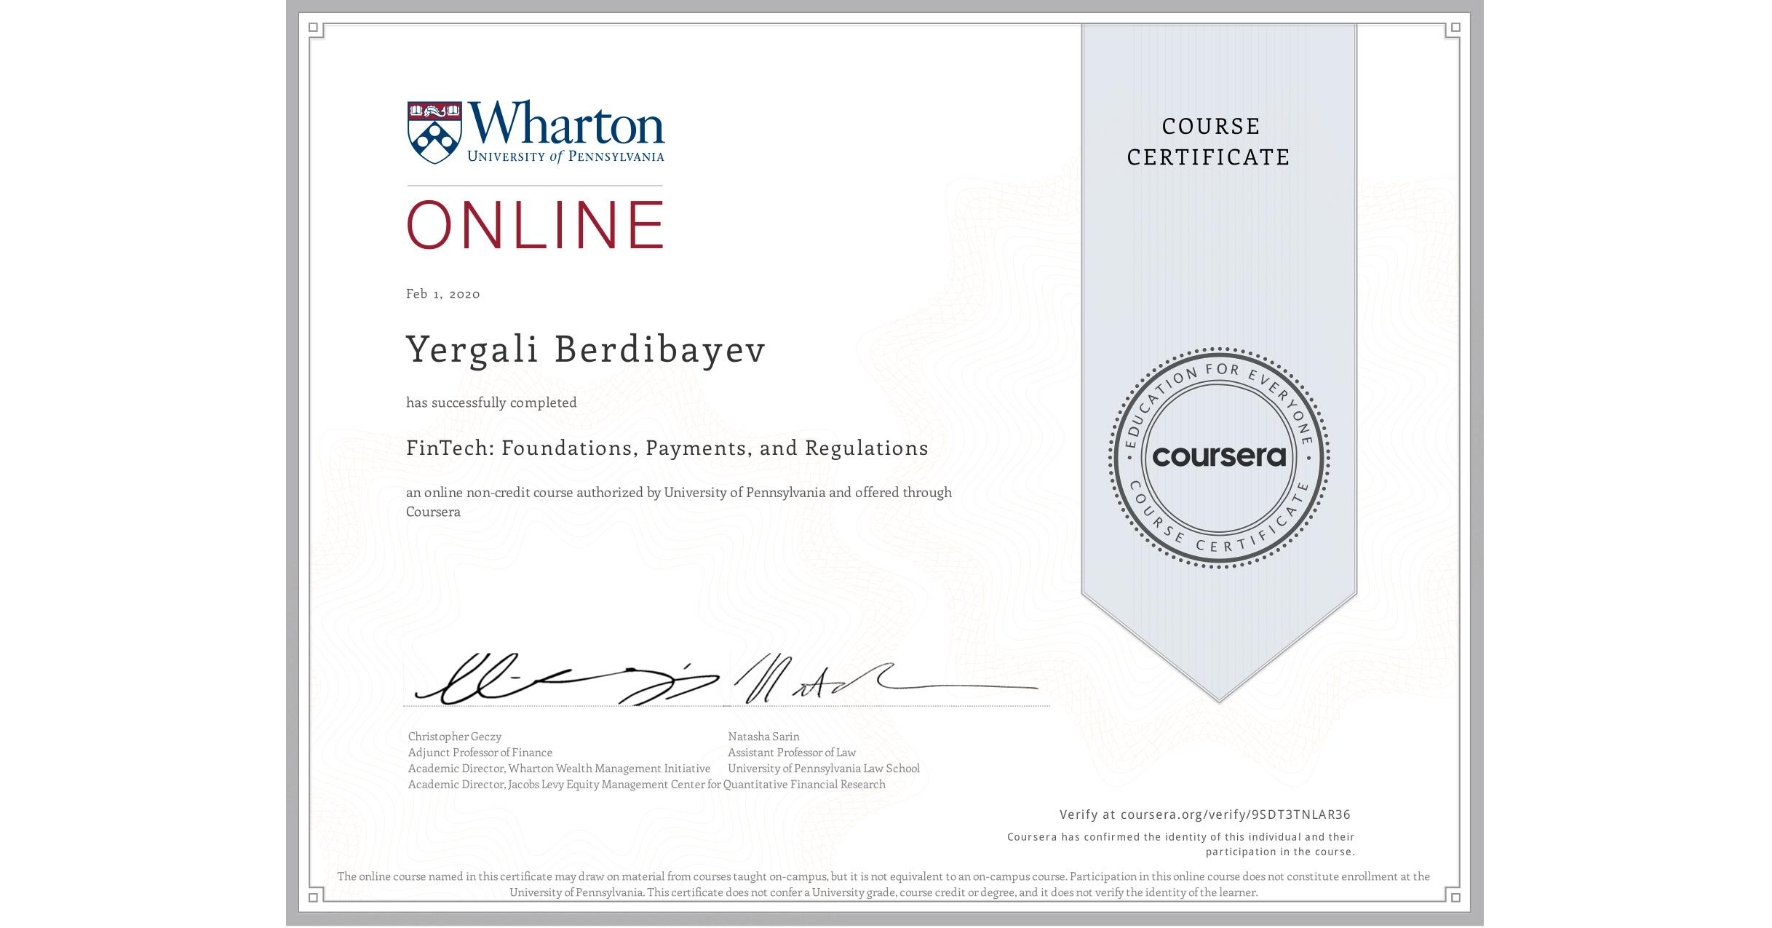 View certificate for Yergali Berdibayev, FinTech: Foundations, Payments, and Regulations, an online non-credit course authorized by University of Pennsylvania and offered through Coursera